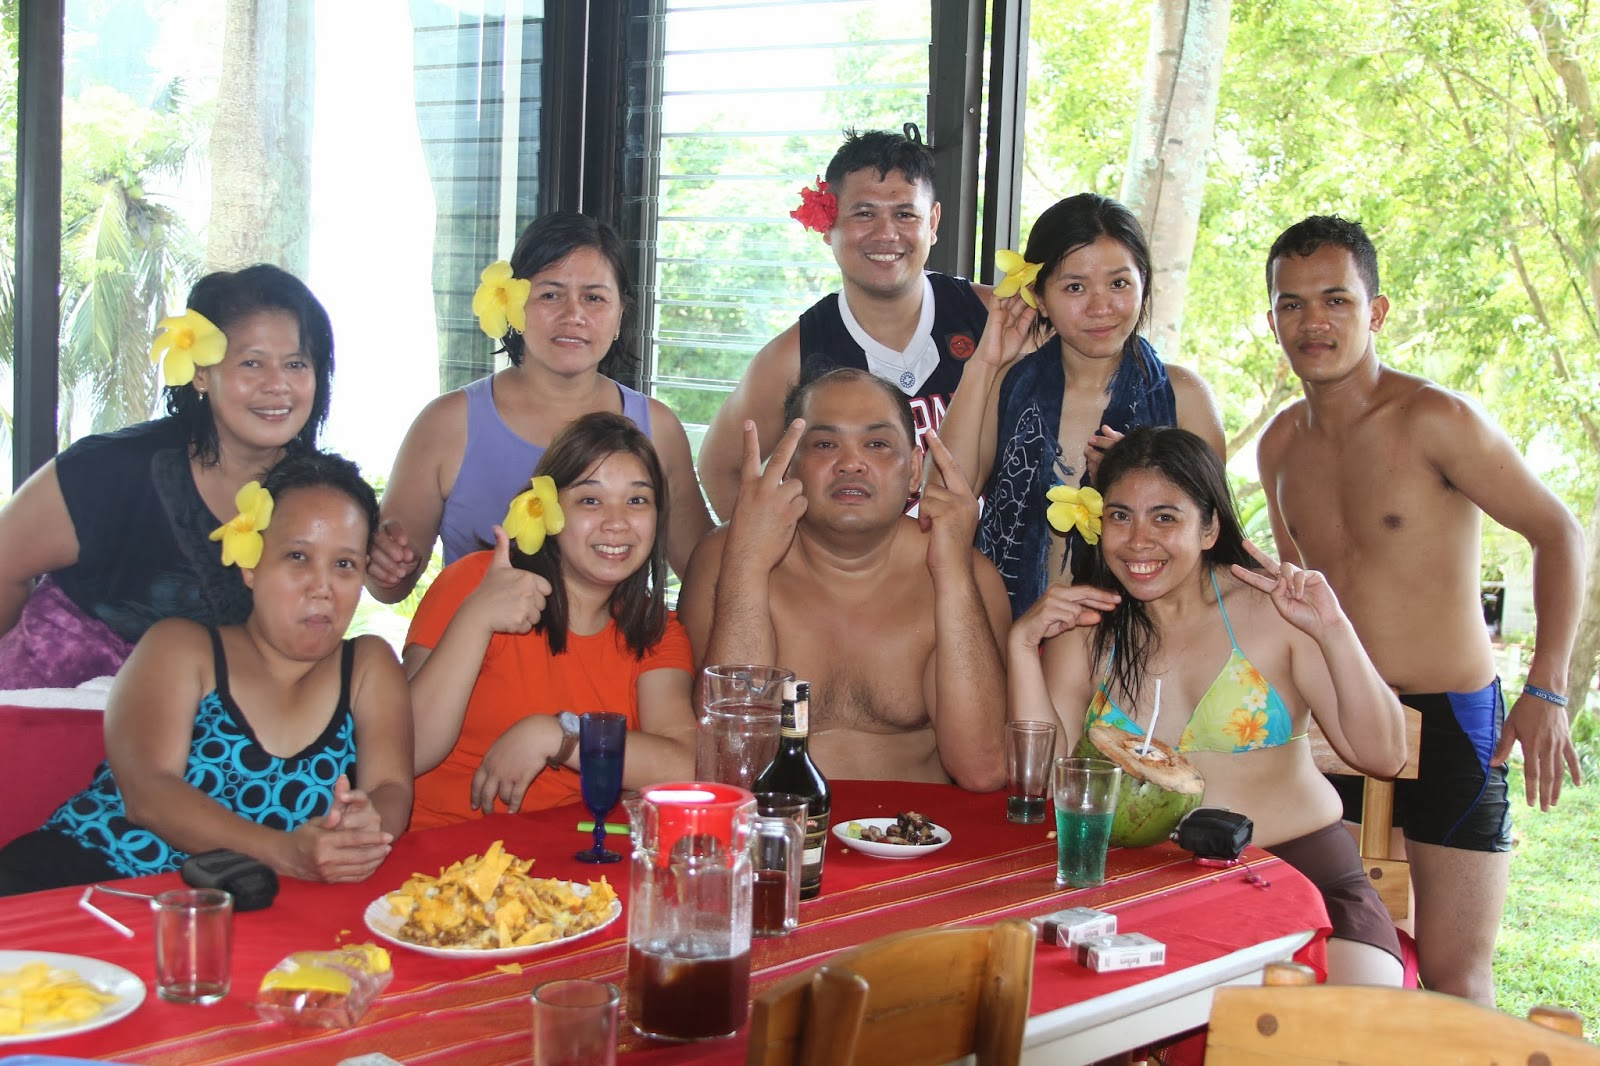 puerto galera hindu dating site Homonhon island is an island in the  the people of mindanao were heavily exposed to hindu and buddhist influence and  puerto galera, sabang beach and.